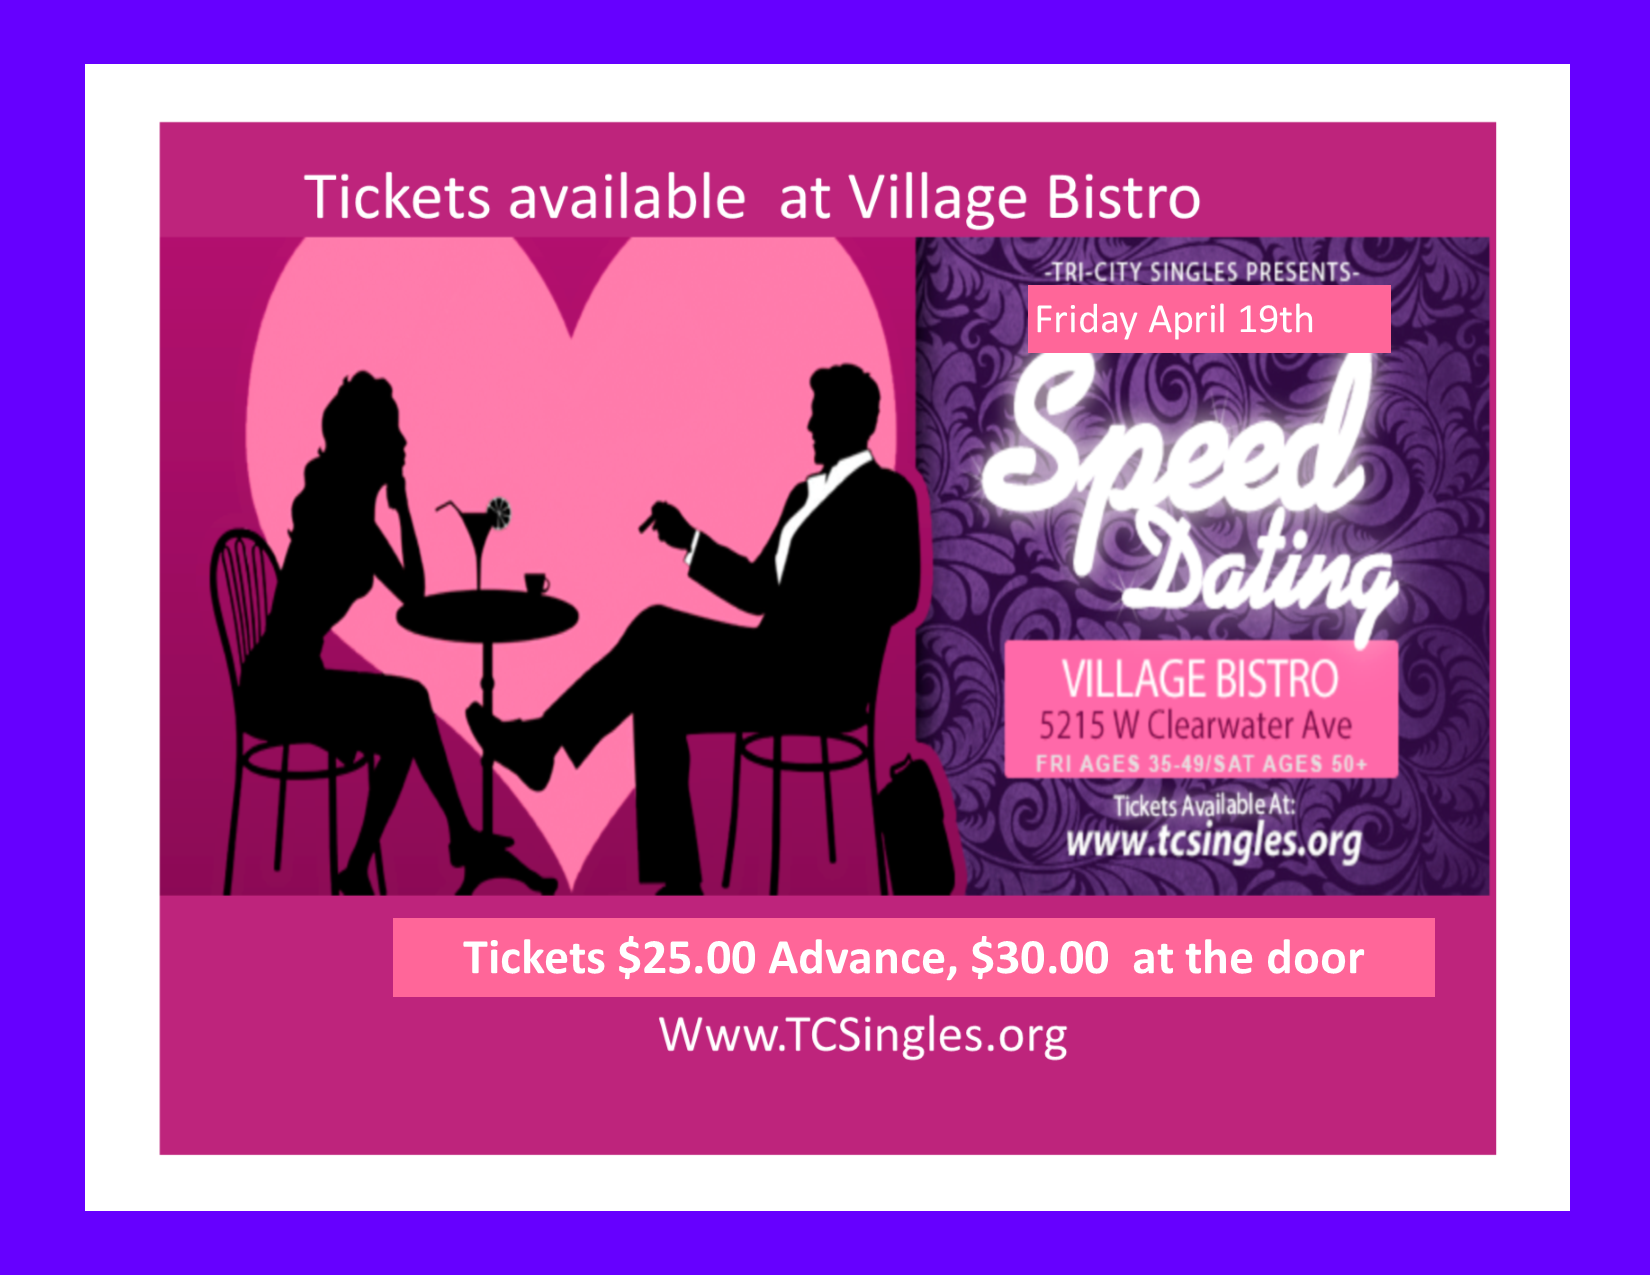 Speed Dating - Guess what we are doing another awesome speed dating event. Ages 30-44 and 45-55. This event will be both age groups. We will be starting at 7:30pm ending time is TBD. Tickets are on sale now! Advance tickets will be $25 and $30 at the door. Bring some single friends and have an awesome time while having a few cocktails and mingling. Let us help you find that perfect connection..